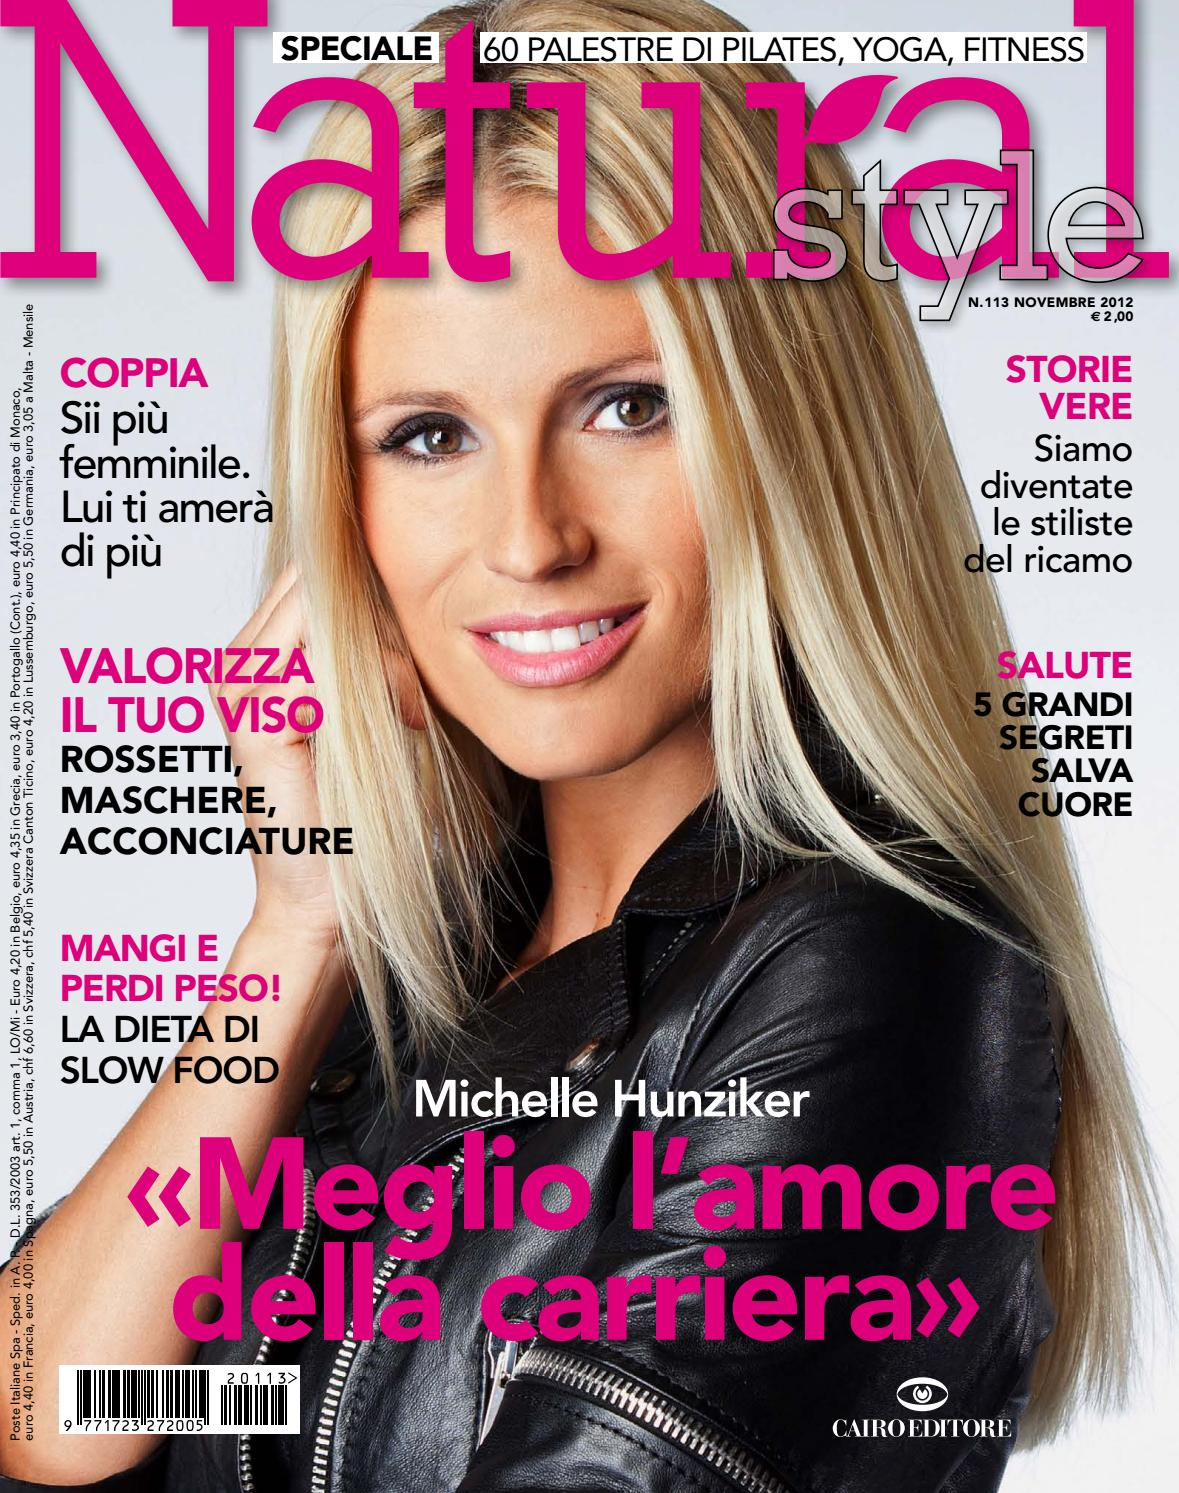 Natural style italy by maytinhduchoa - issuu 9ce756a3bd0